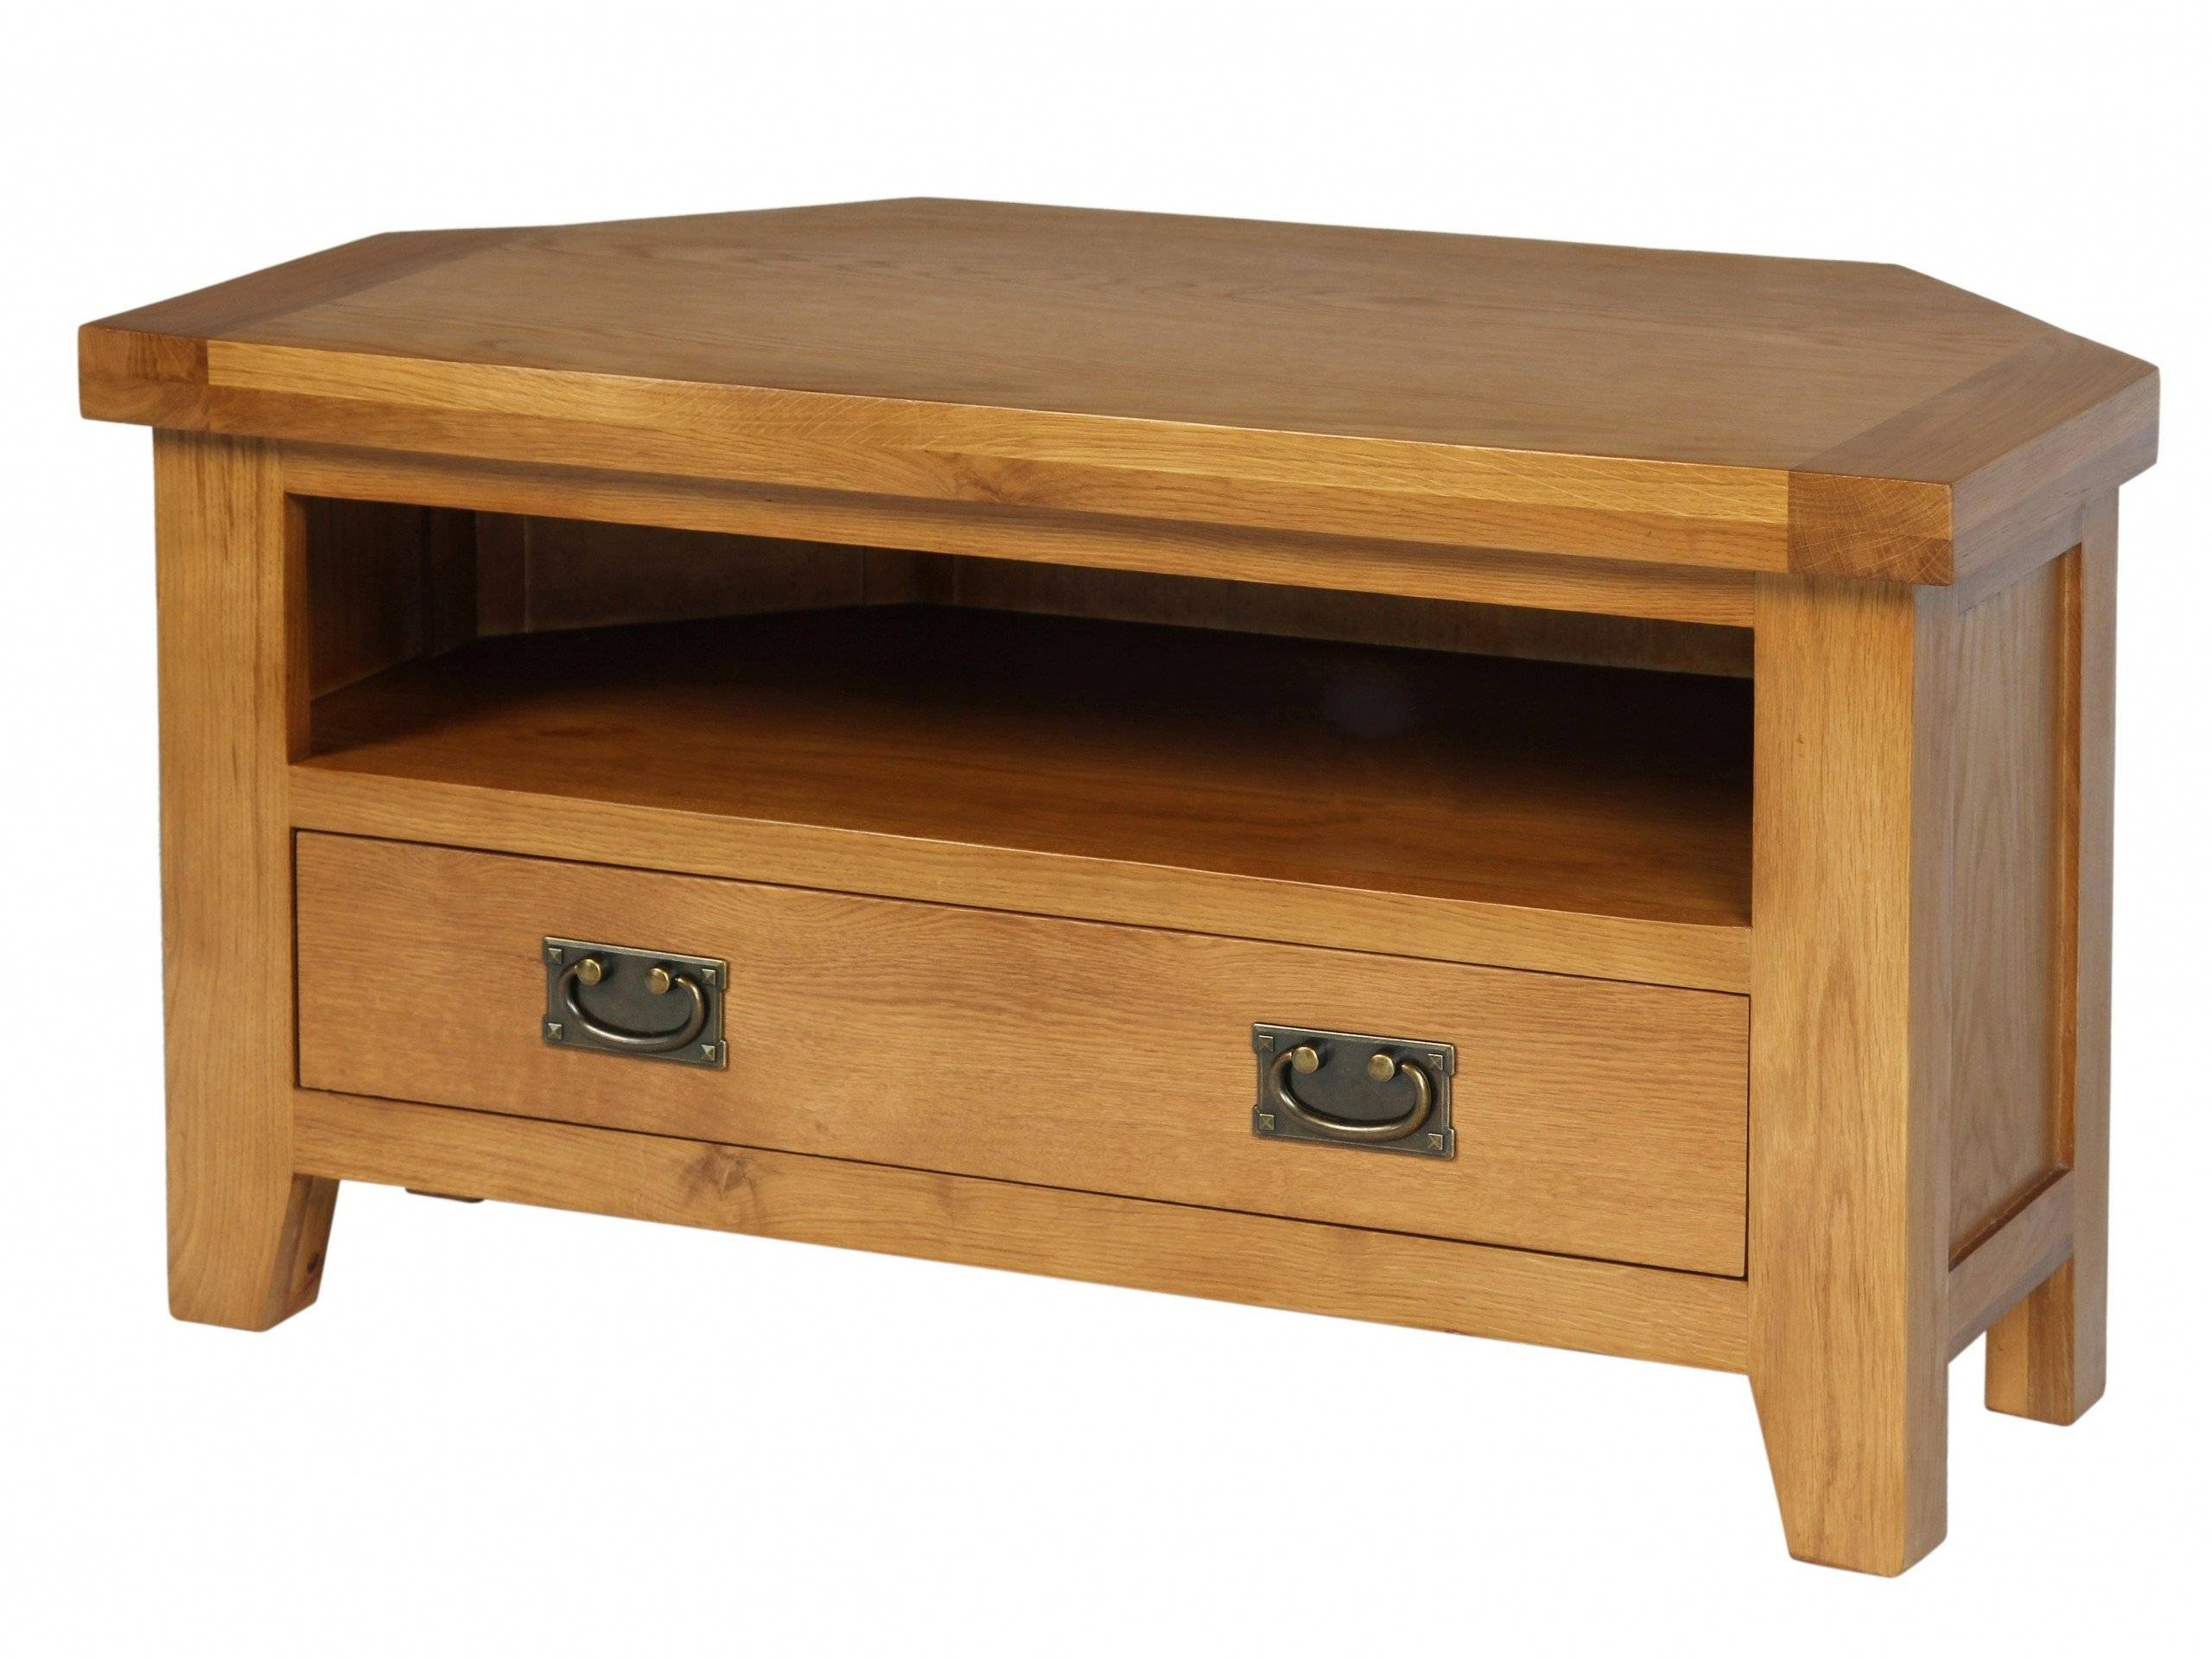 Country Oak Corner Tv Unit with regard to Corner Wooden Tv Cabinets (Image 6 of 15)